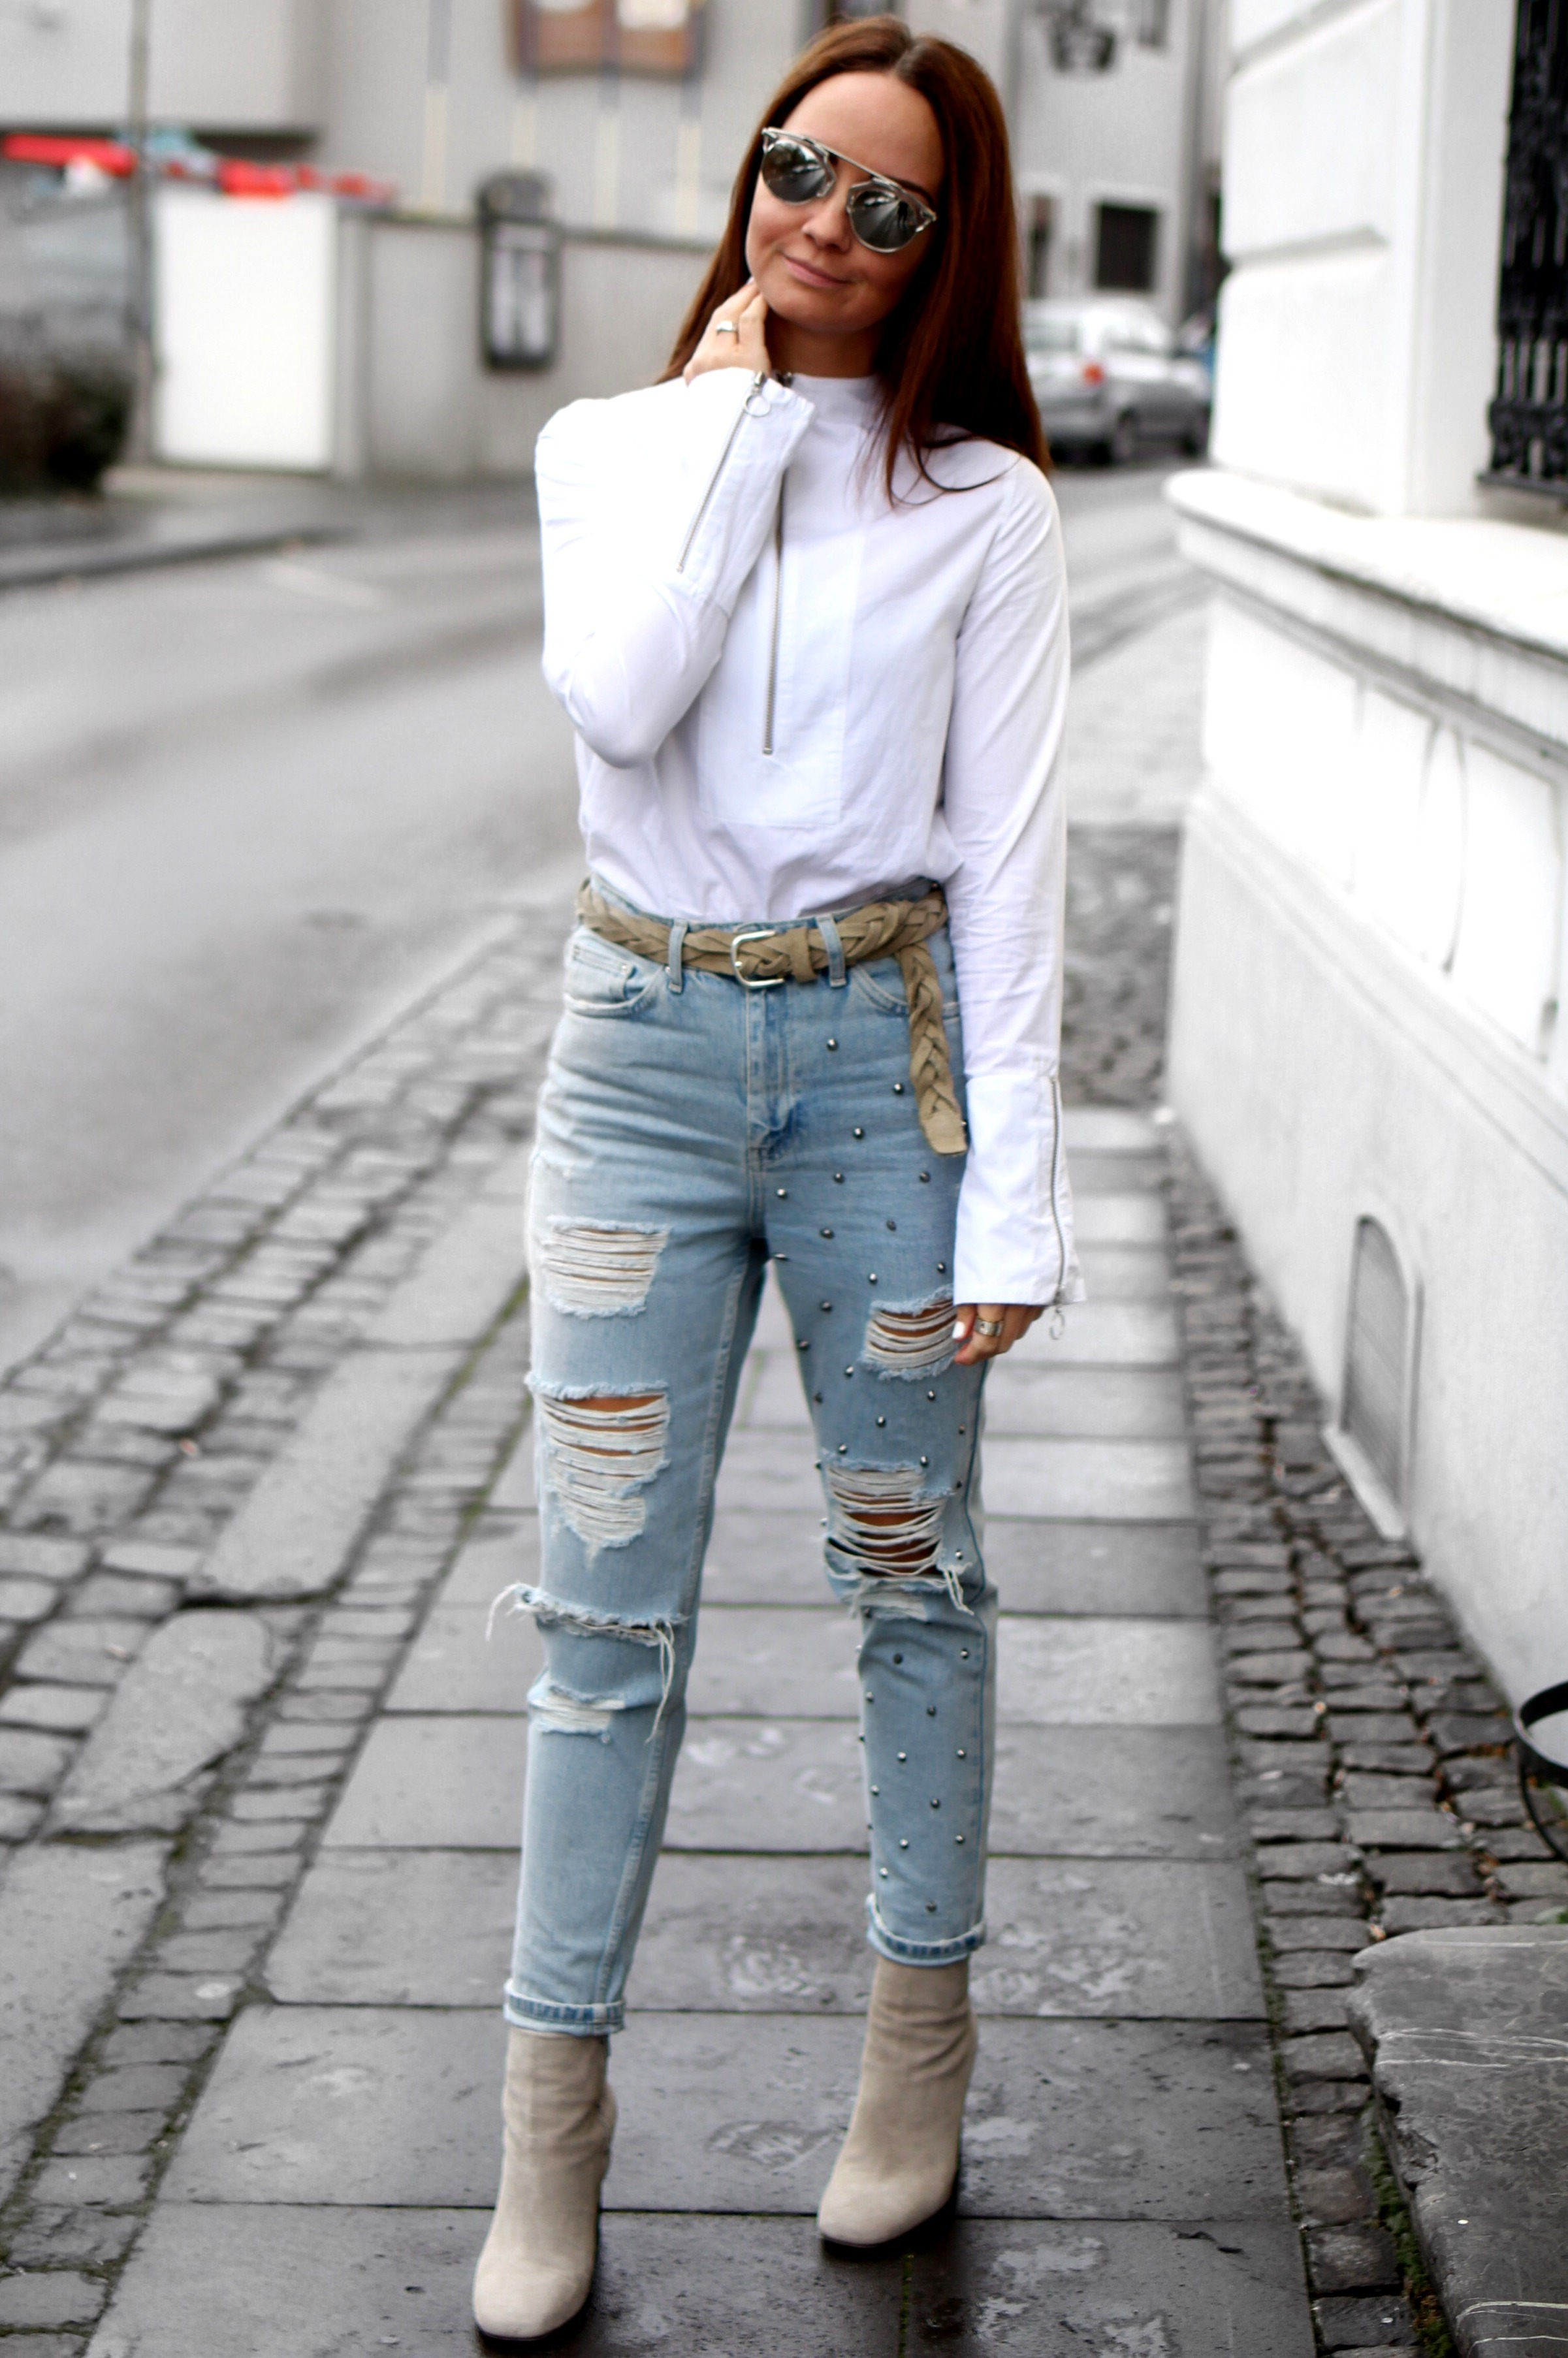 Fashioncircuz by Jenny streetstyle OUTFIT | RIPPED JEANS & STATEMENT BLUSE